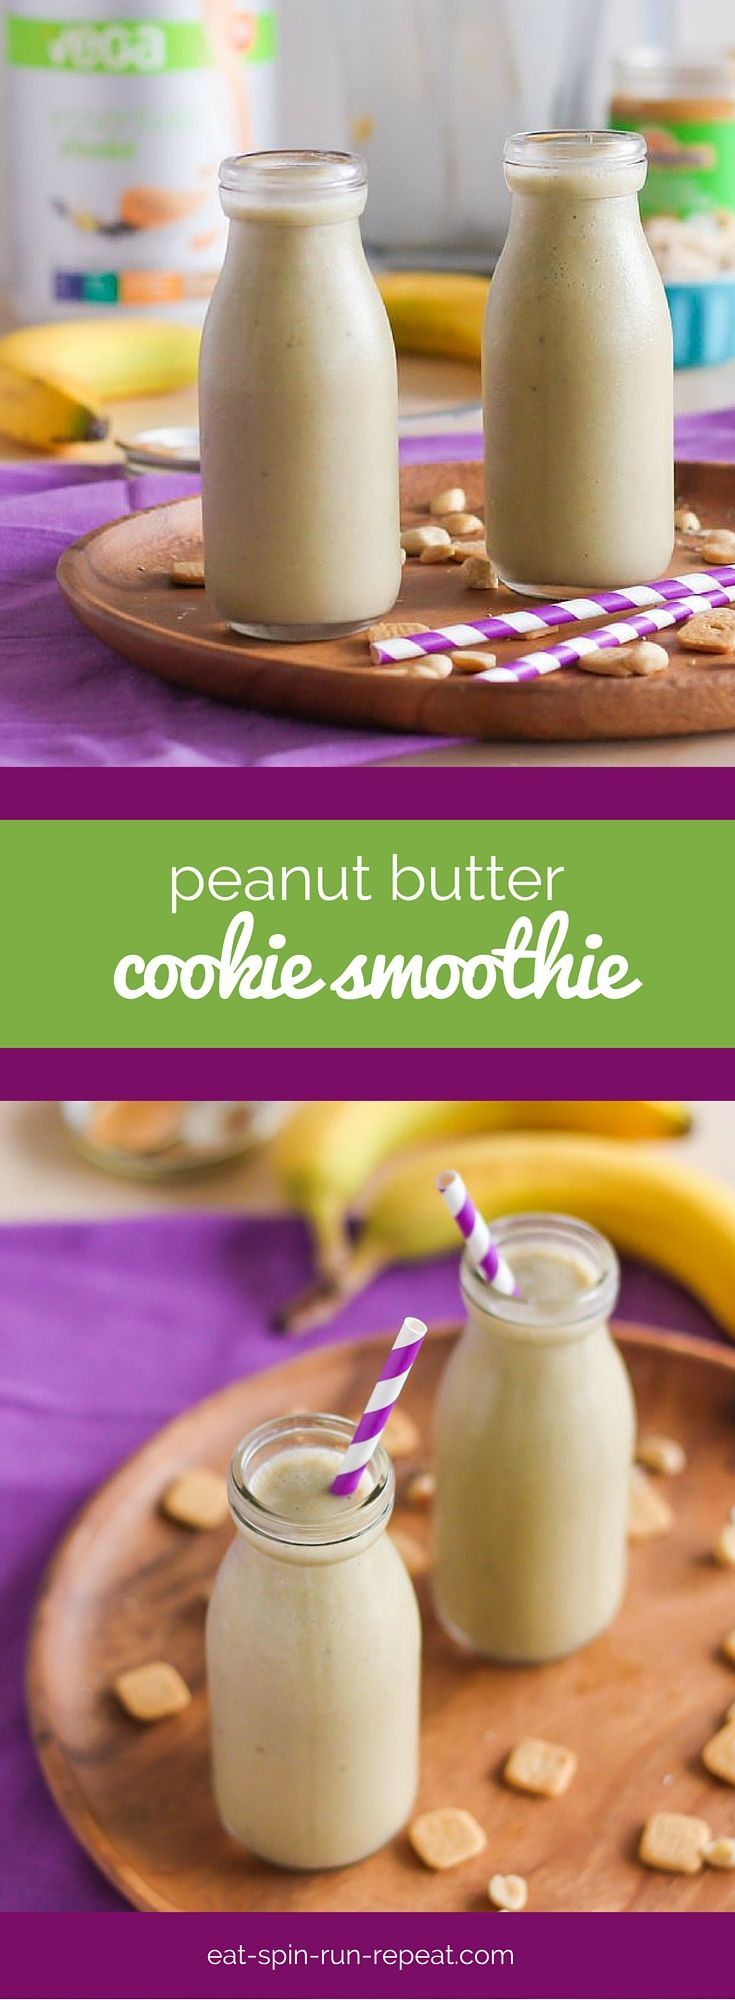 Were soft baked, chewy-centred peanut butter cookies a memory from your childhood? They were certainly one of mine, and this Peanut Butter Cookie Smoothie is a healthy (yet just as delicious) reminder! It's vegan, gluten-free, soy-free and loaded with plant-based protein thanks to @vegateam Vega One or Vega Essentials